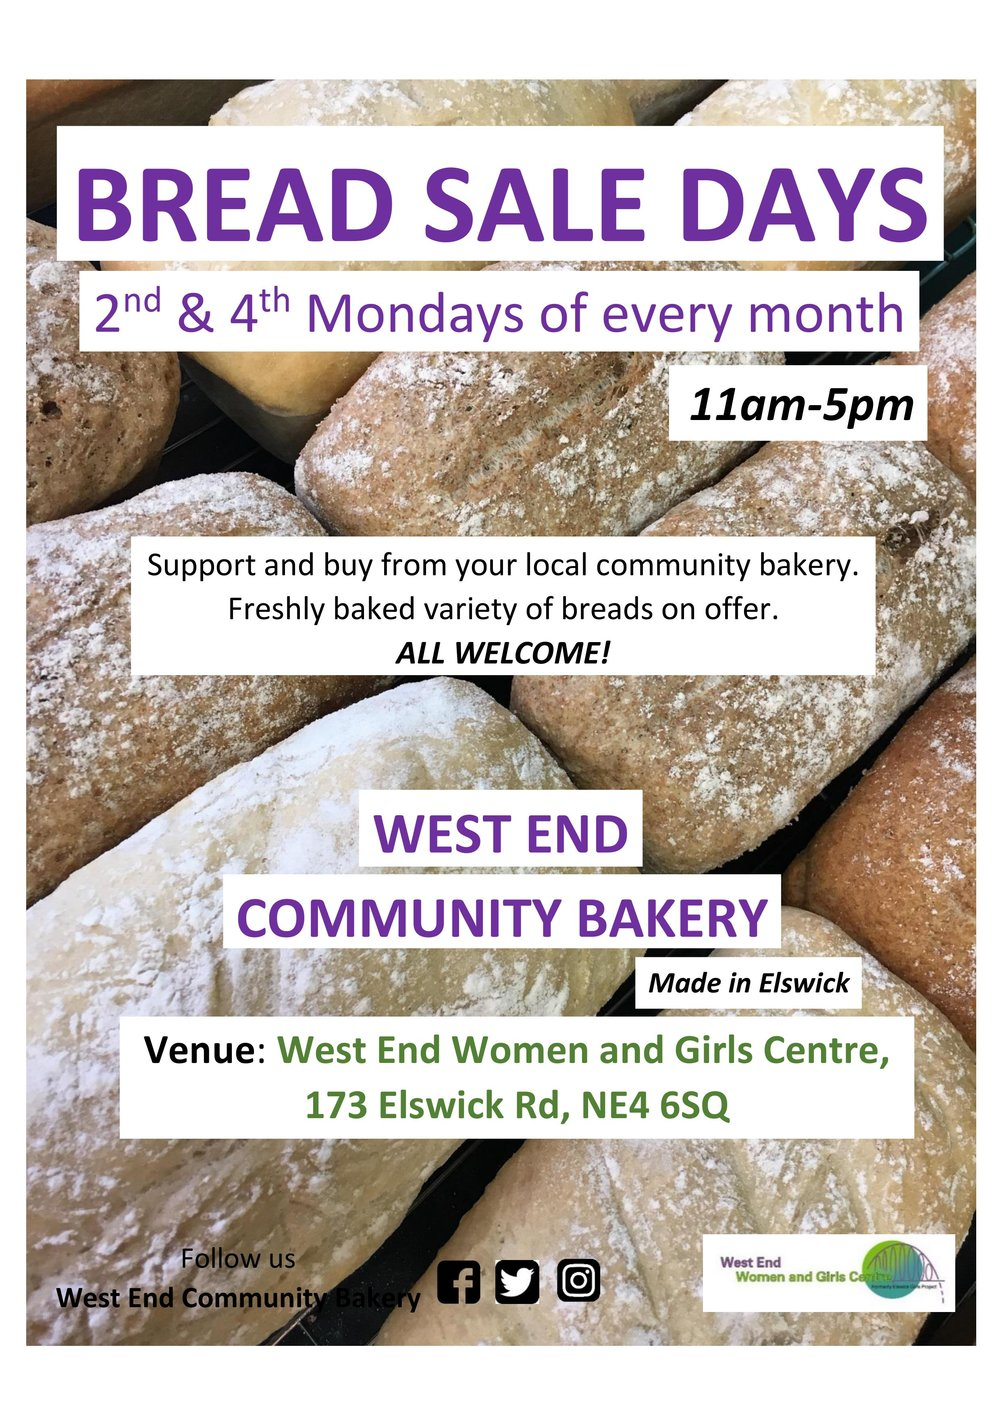 Come and get your fresh bread! - West End Community Bakery is excited to establish a monthly bread sale day, on the 2nd & 4th Mondays of every month, 11am-5pm!A variety of freshly baked breads will be available on the day, including white, brown, mozzarella and tomato, large and mini loaves. Have a request to make? Don't be shy!Dates:Monday 11th JuneMonday 25th JuneMonday 9th JulyMonday 23rd JulyMonday 13th August*Monday 10th SeptemberMonday 24th SeptemberMonday 8th OctoberMonday 22nd OctoberMonday 12th NovemberMonday 26th NovmeberMonday 10th December*** only one August date due to Bank Holiday on Monday 27th August      **only one December date due to Christmas EveBe kind and share this event!